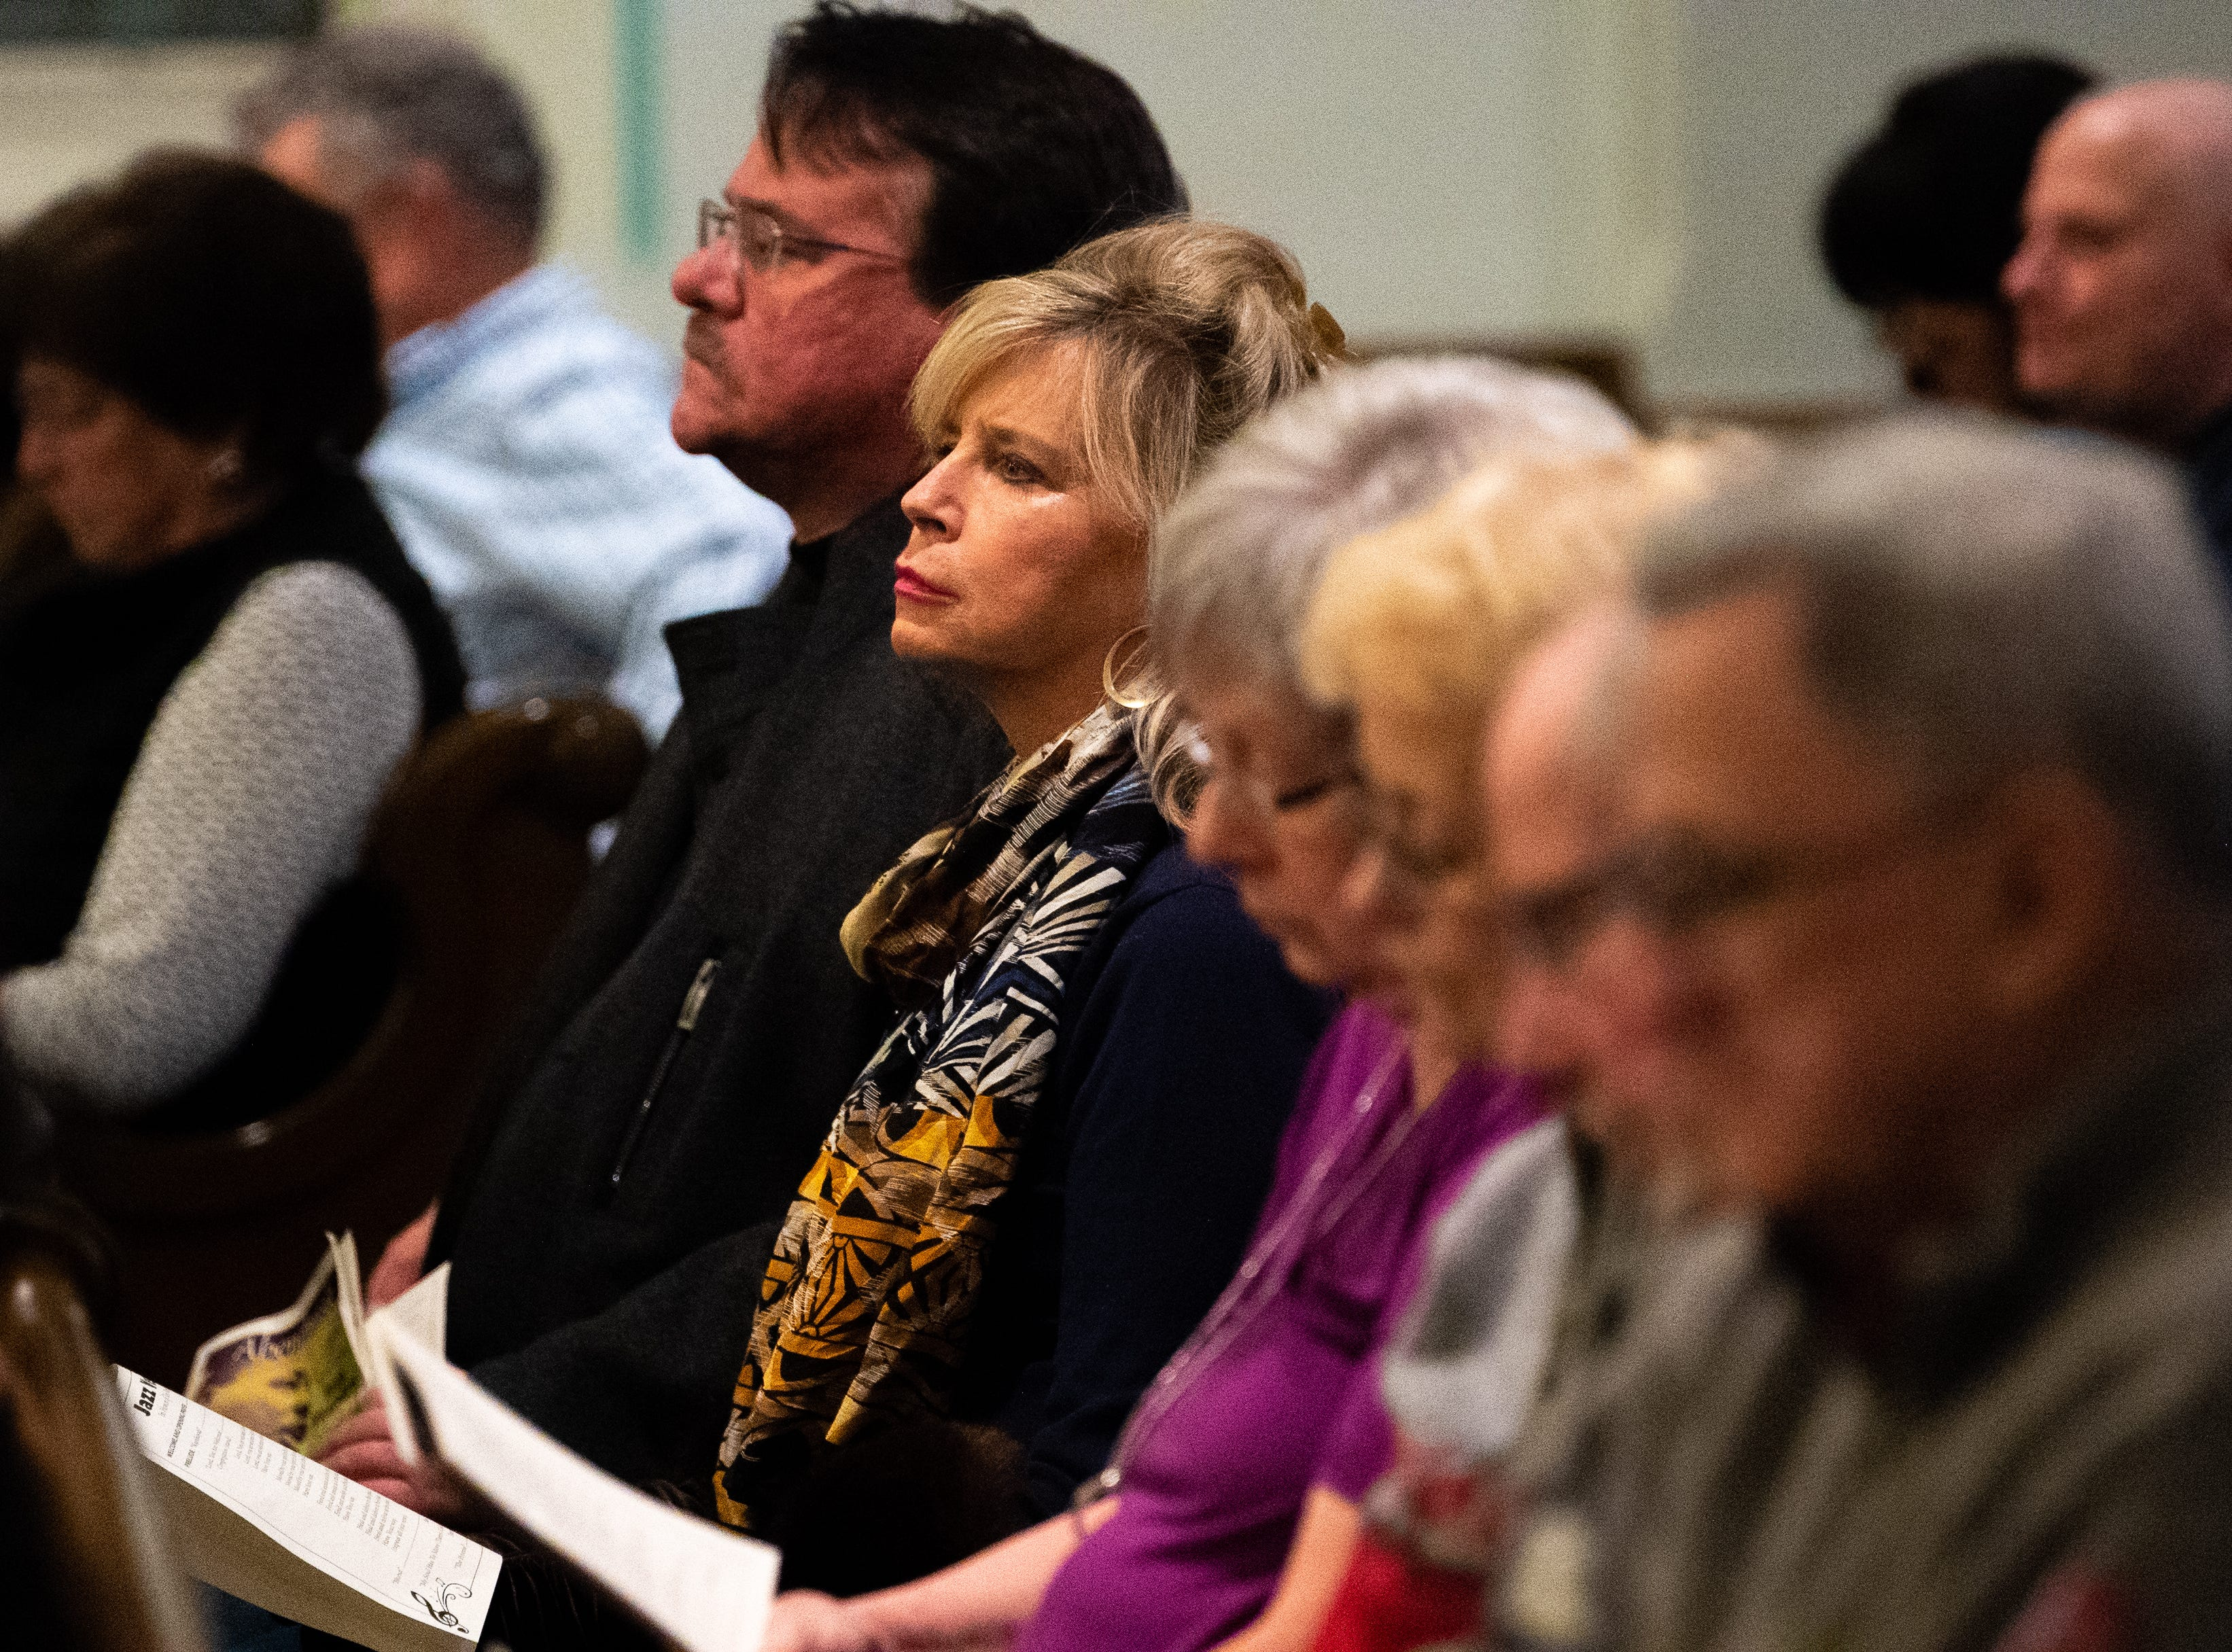 In the middle of the concert, the audience says a prayer with Rev. Allison Beaulieu, January 12, 2019.